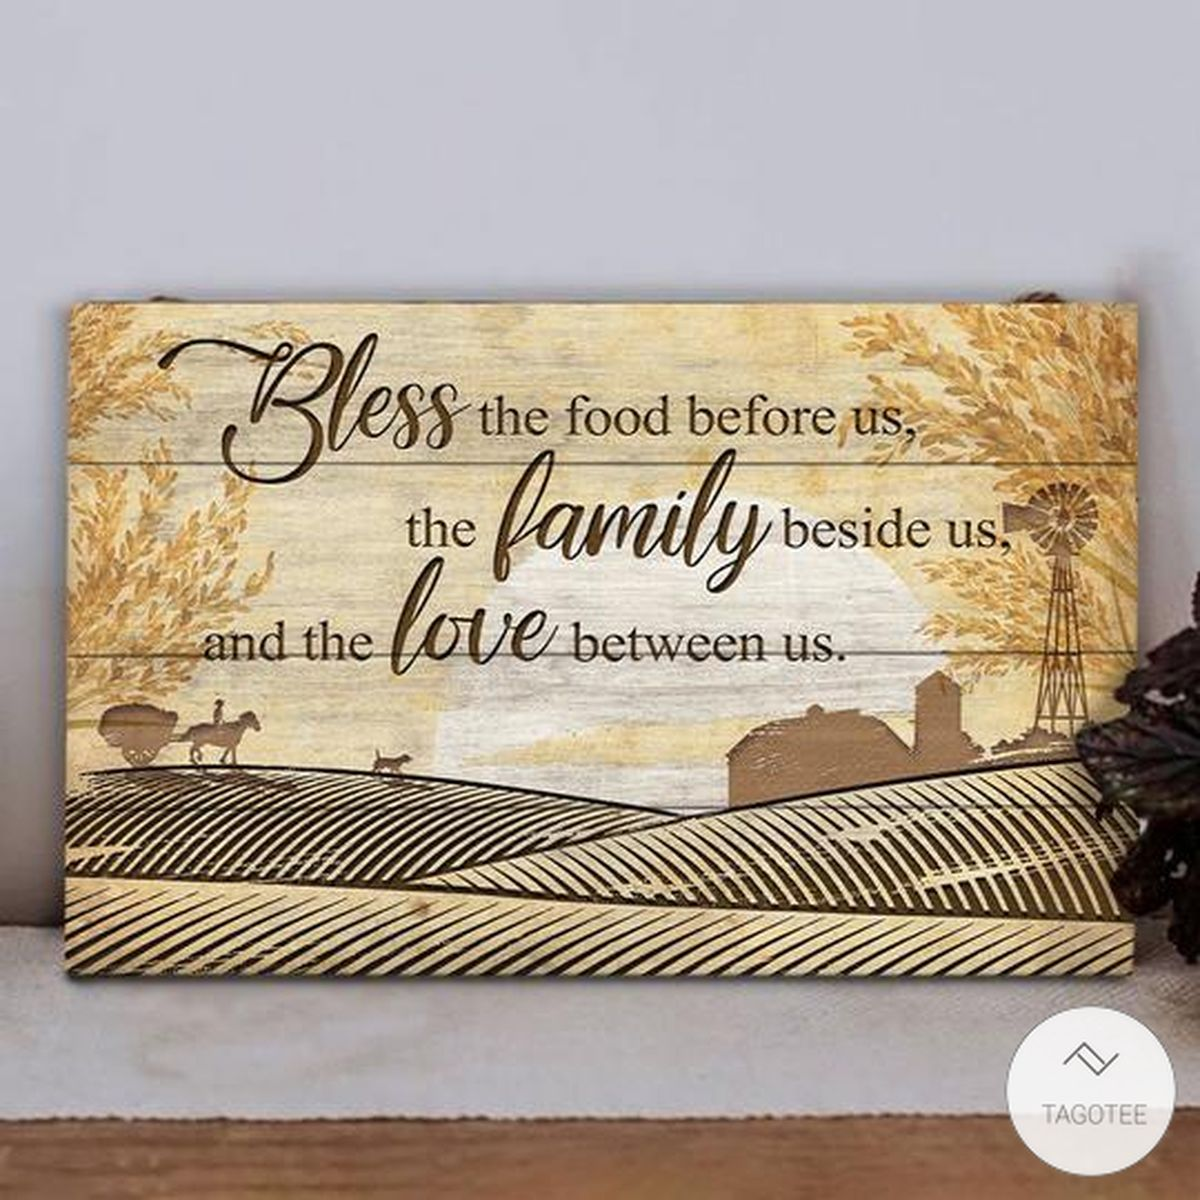 Farm Bless The Food Before Us, The Family Beside Us And The Love Between Us Rectangle Wood Signz